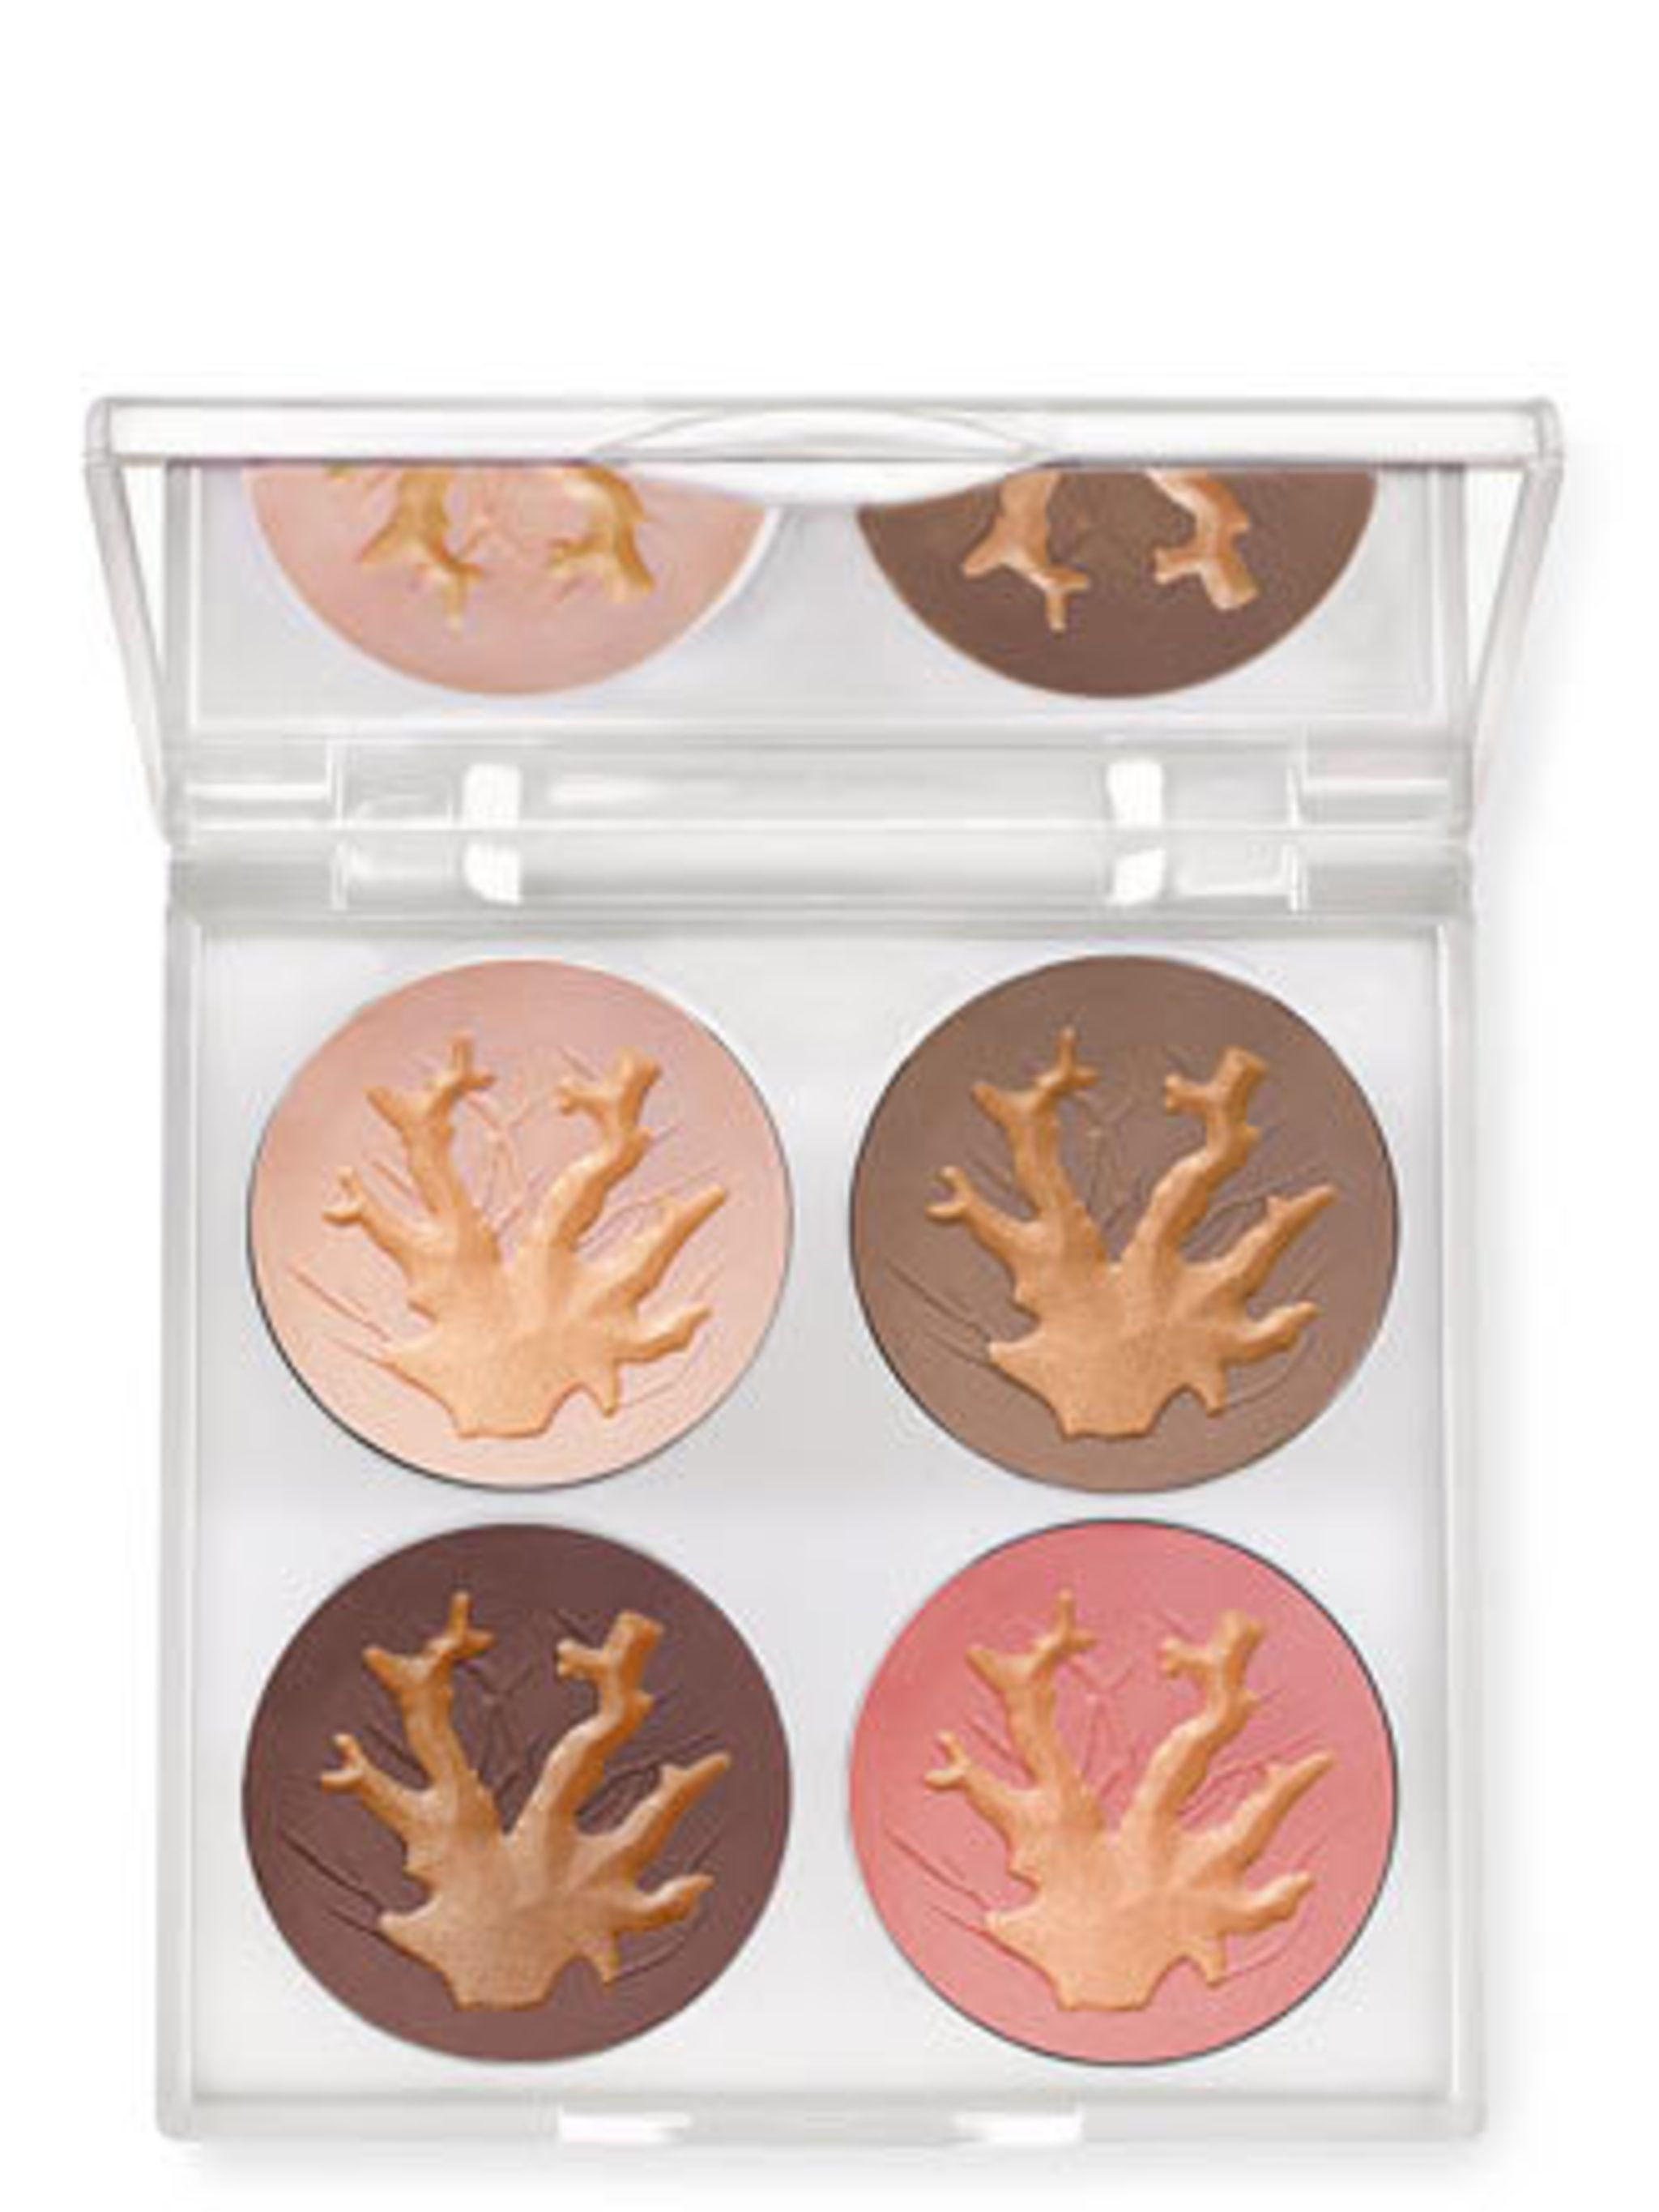 <p>Chantecaille has teamed-up with the Marine Conservation Institute (MCI) to protect 10% of the world's oceans by 2020. Three quarters of the world's coral reefs are at risk as a result of over fishing, pollution and global warming. 5% of every sale of T